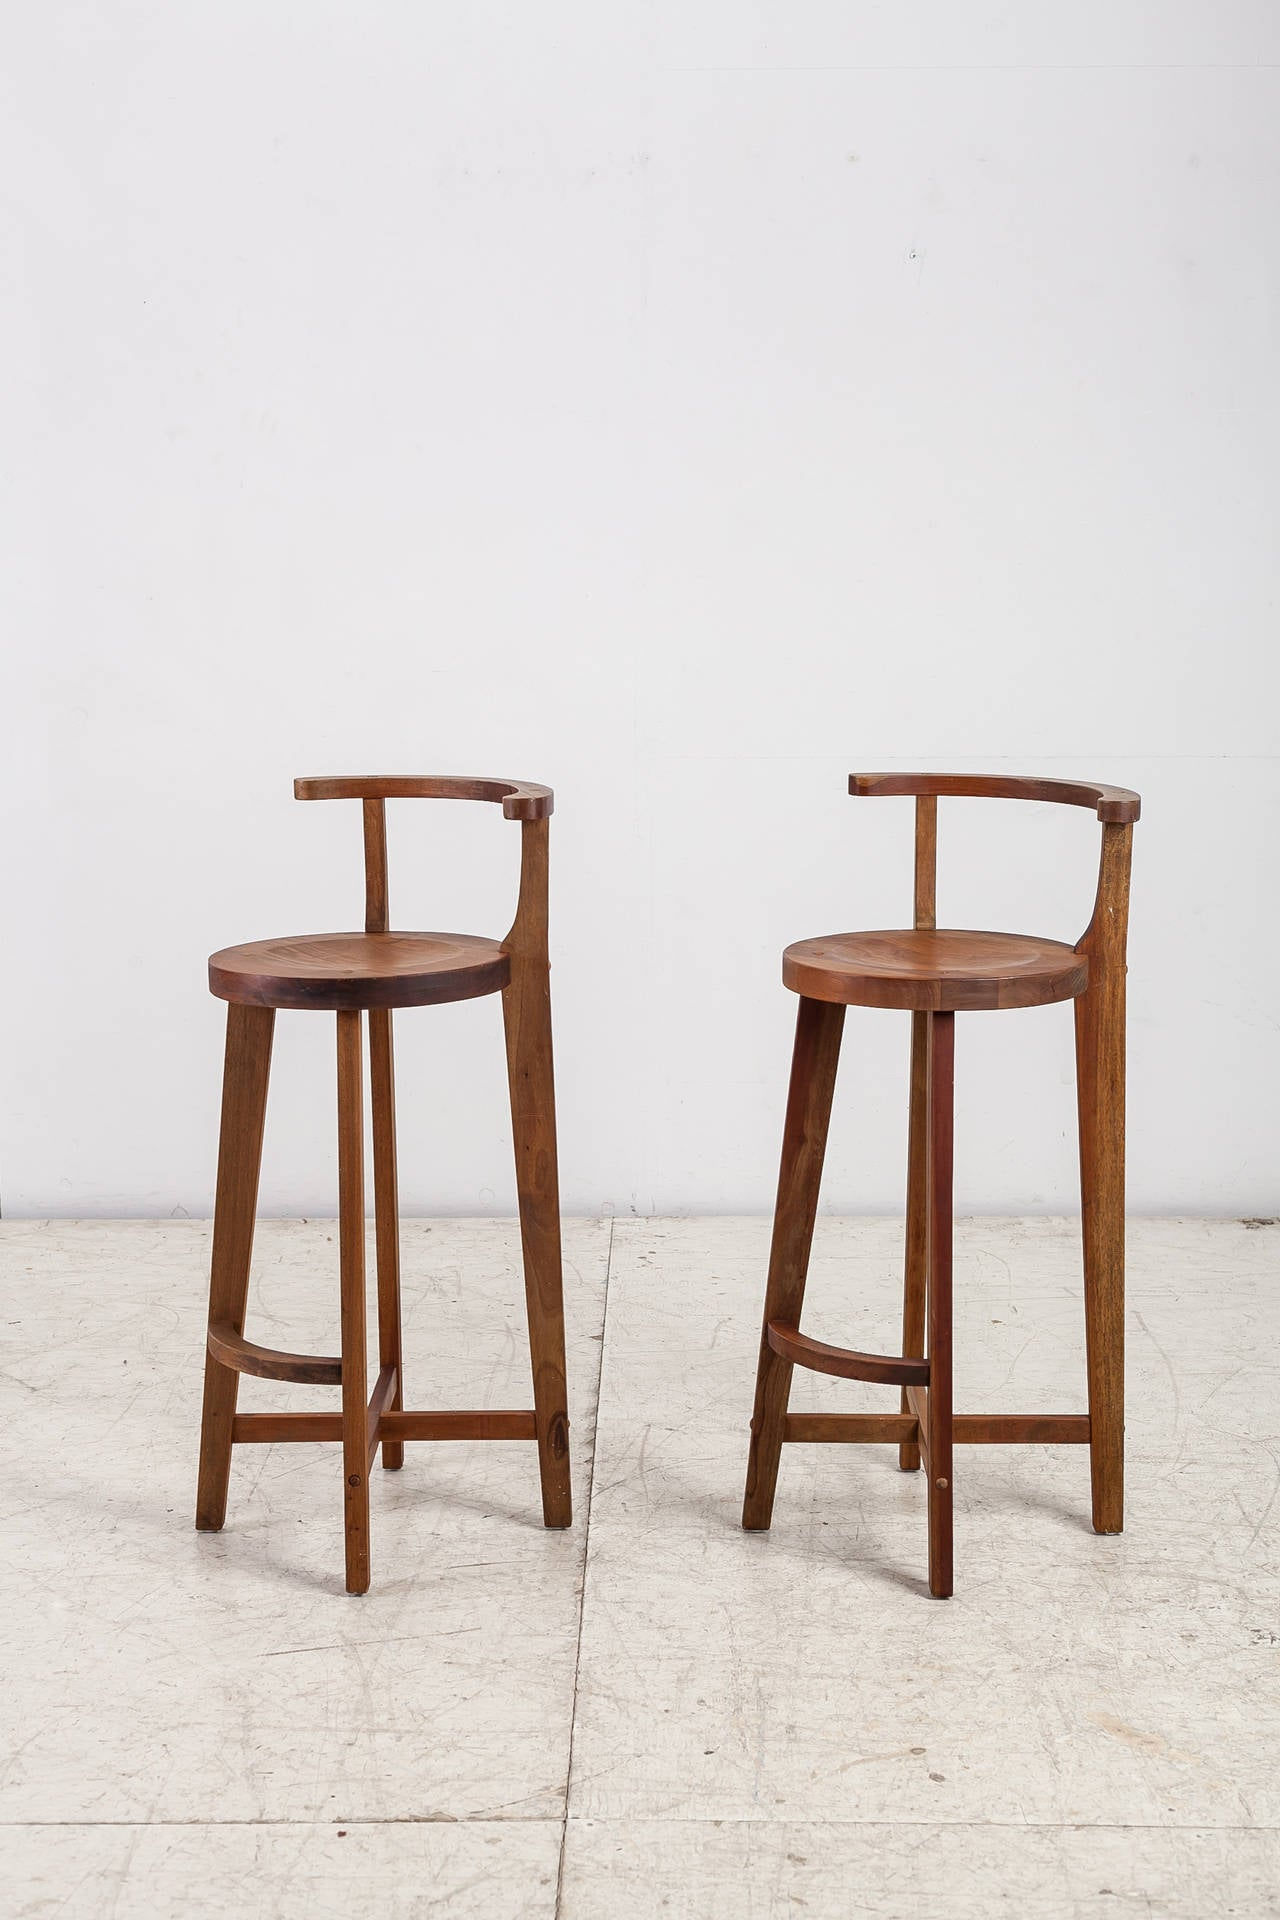 Very Impressive portraiture of Pair Studio crafted wooden bar stools with rounded back rests For Sale  with #462315 color and 1280x1920 pixels